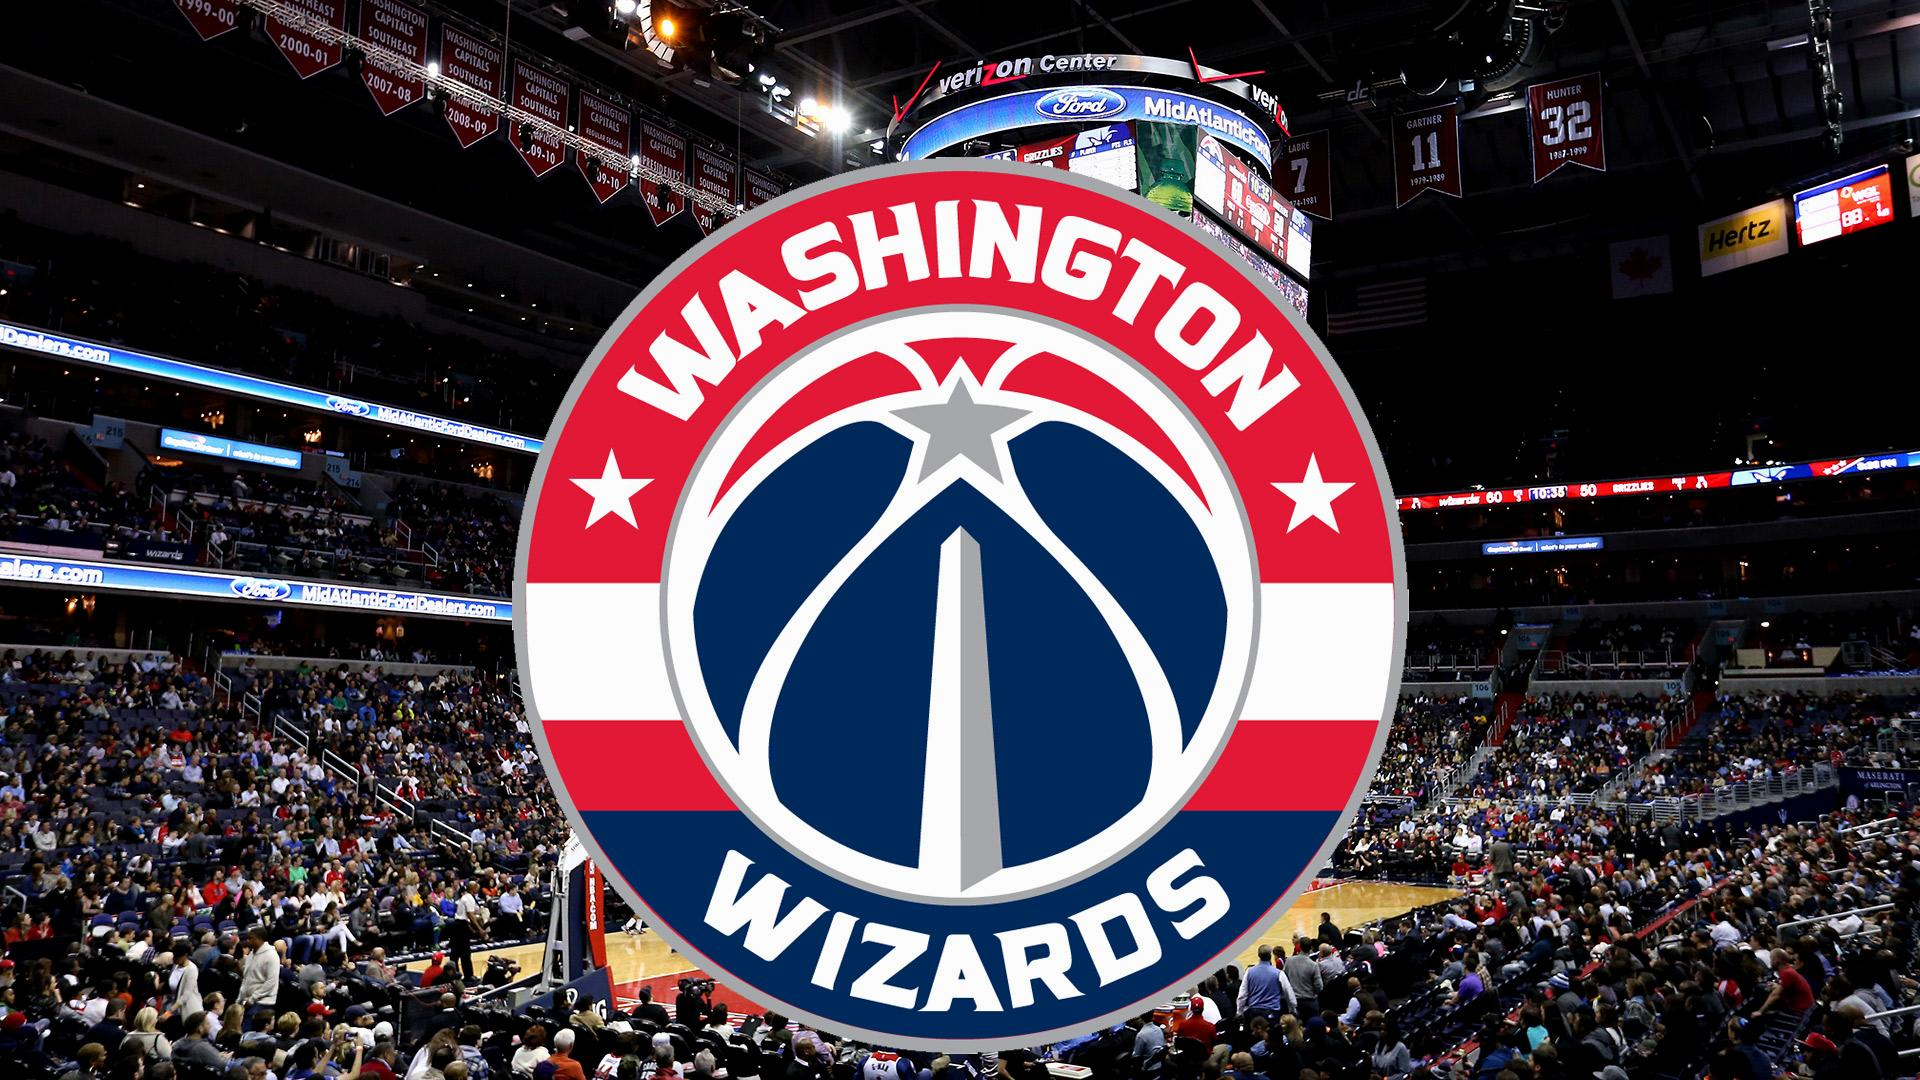 Star Trek Wallpaper Hd Download Washington Wizards Wallpaper Gallery